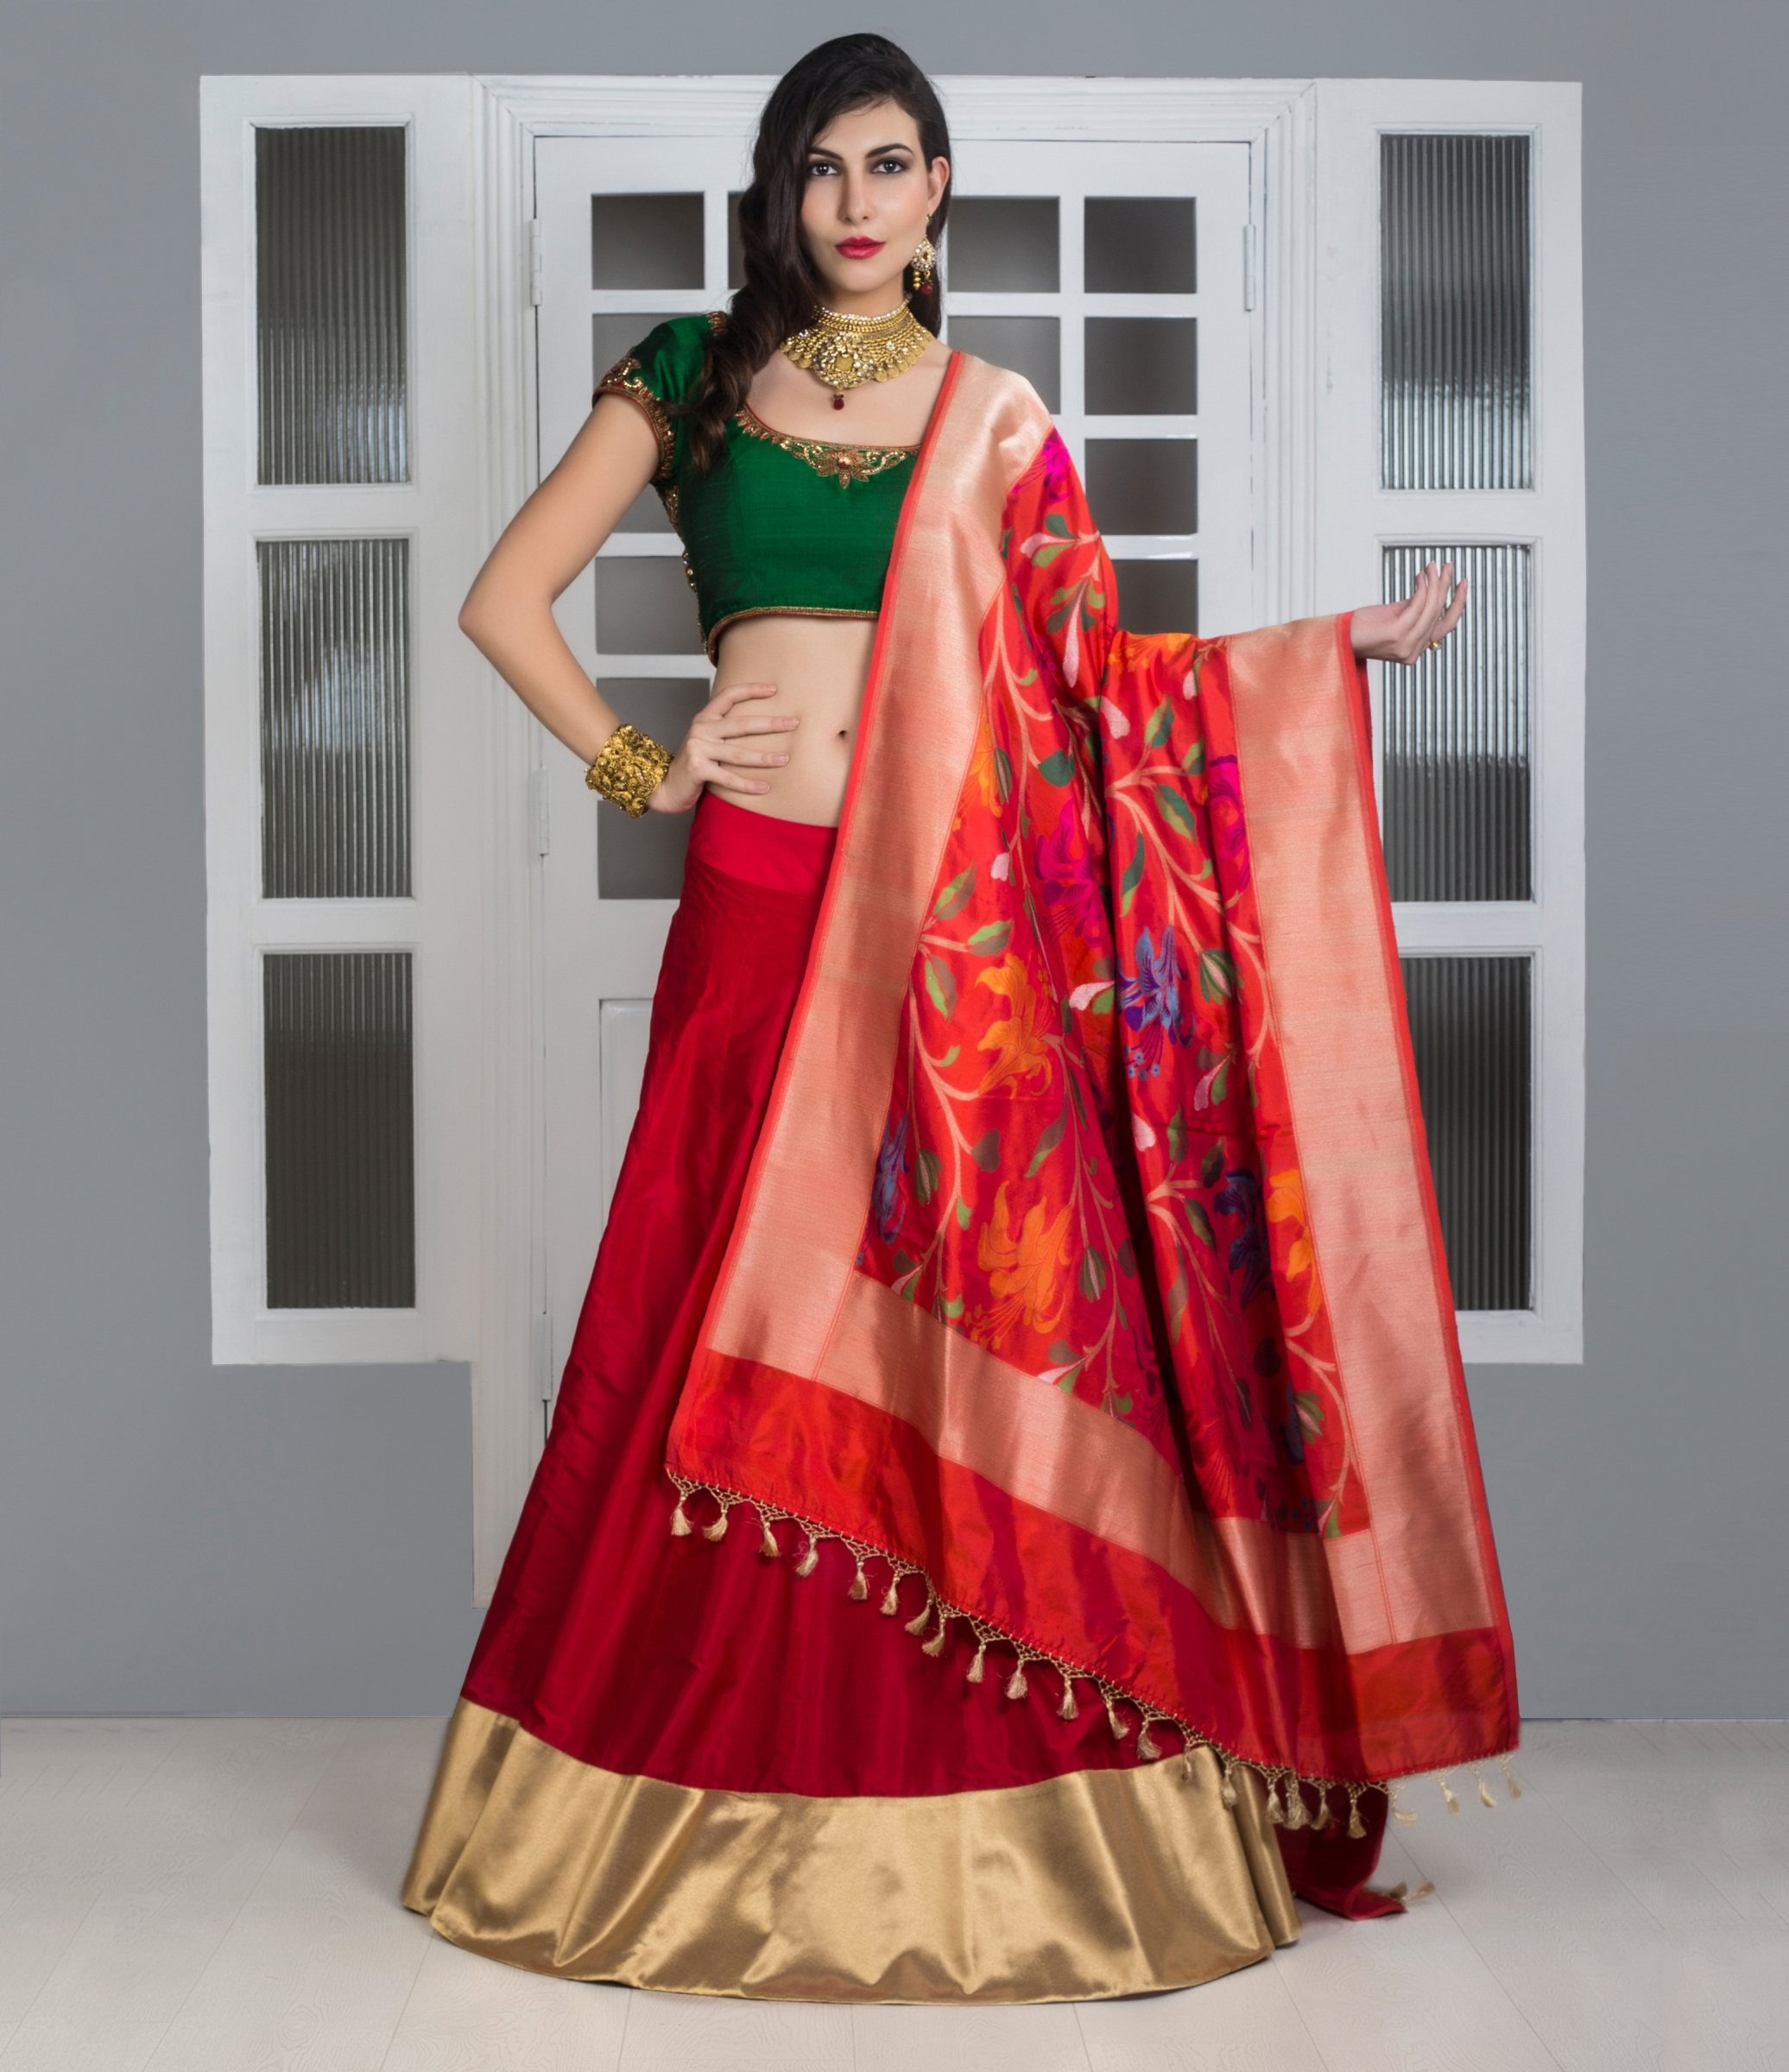 31c73a5f266 Buy Red Pure Silk Lehenga With Banarasi Dupatta Designer Lehengas. Shipping  Worldwide.